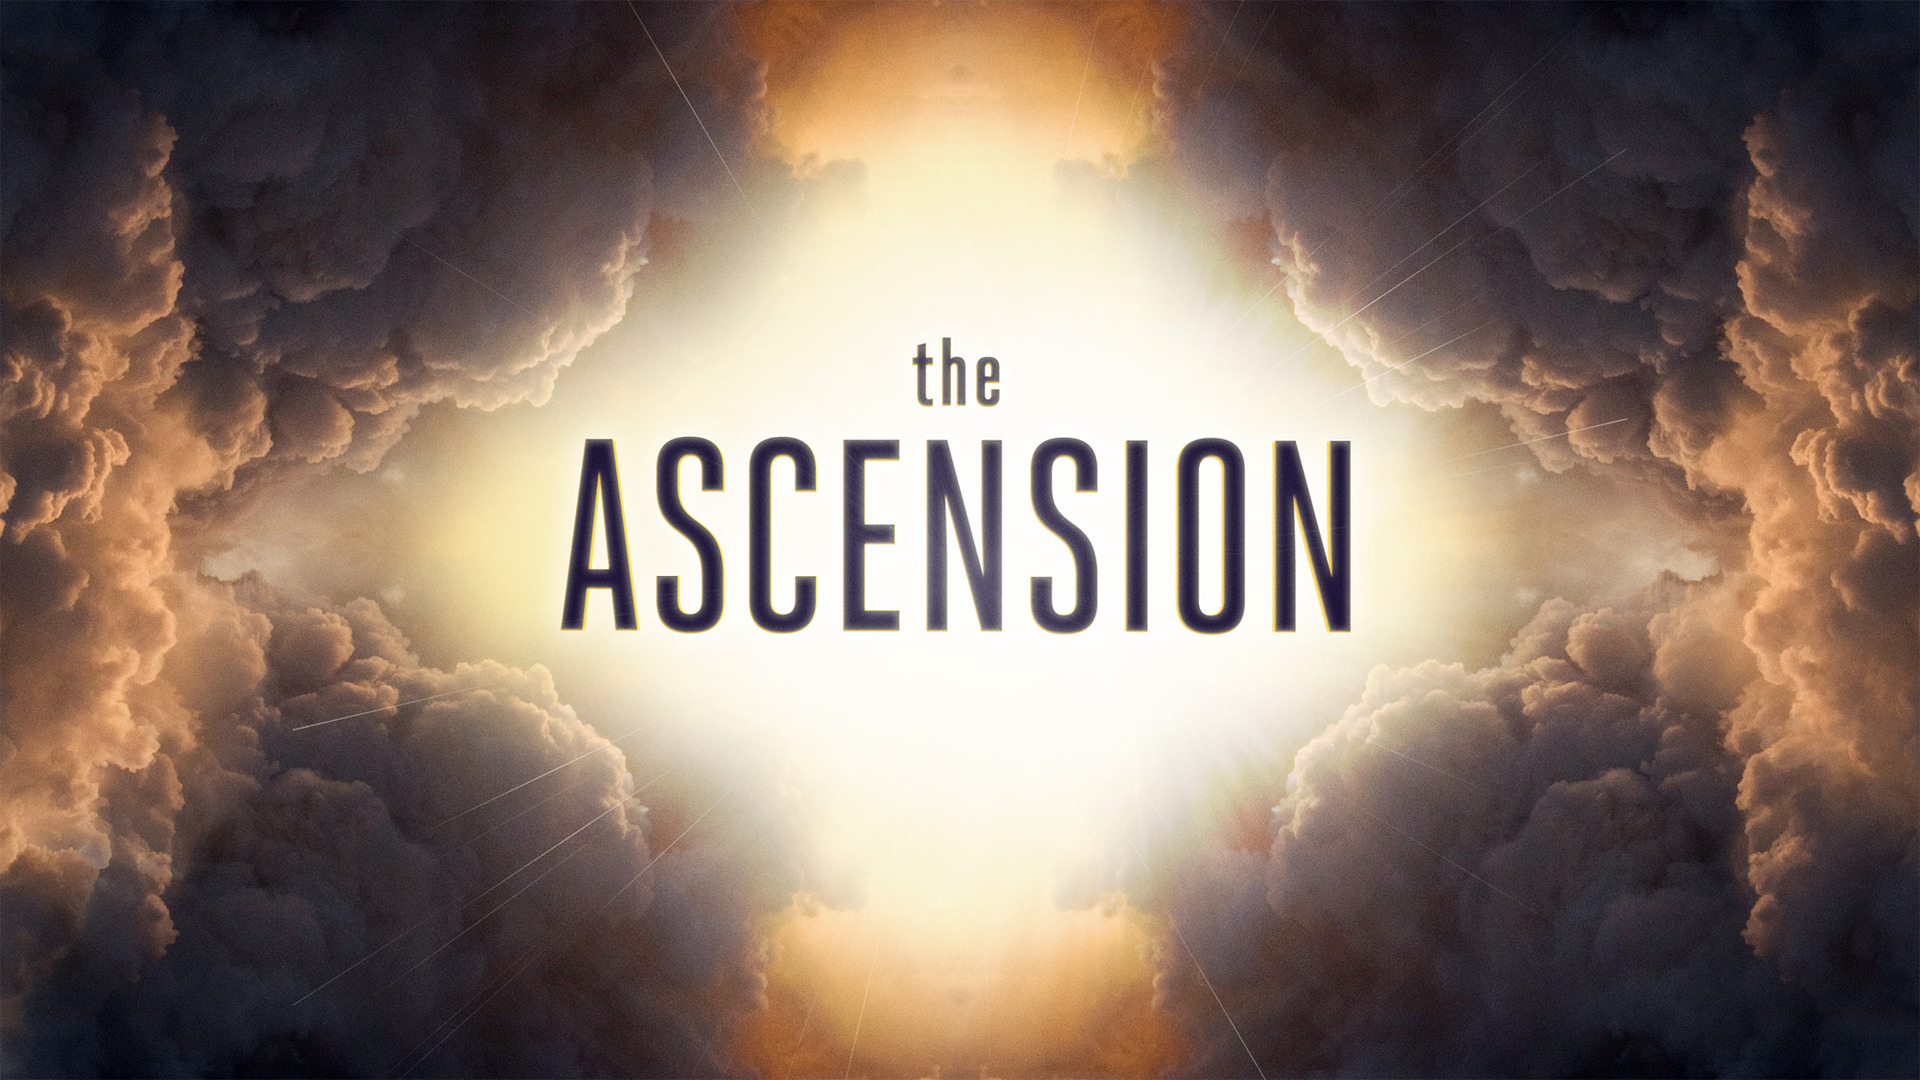 the_ascension-title-2-Wide 16x9.jpg